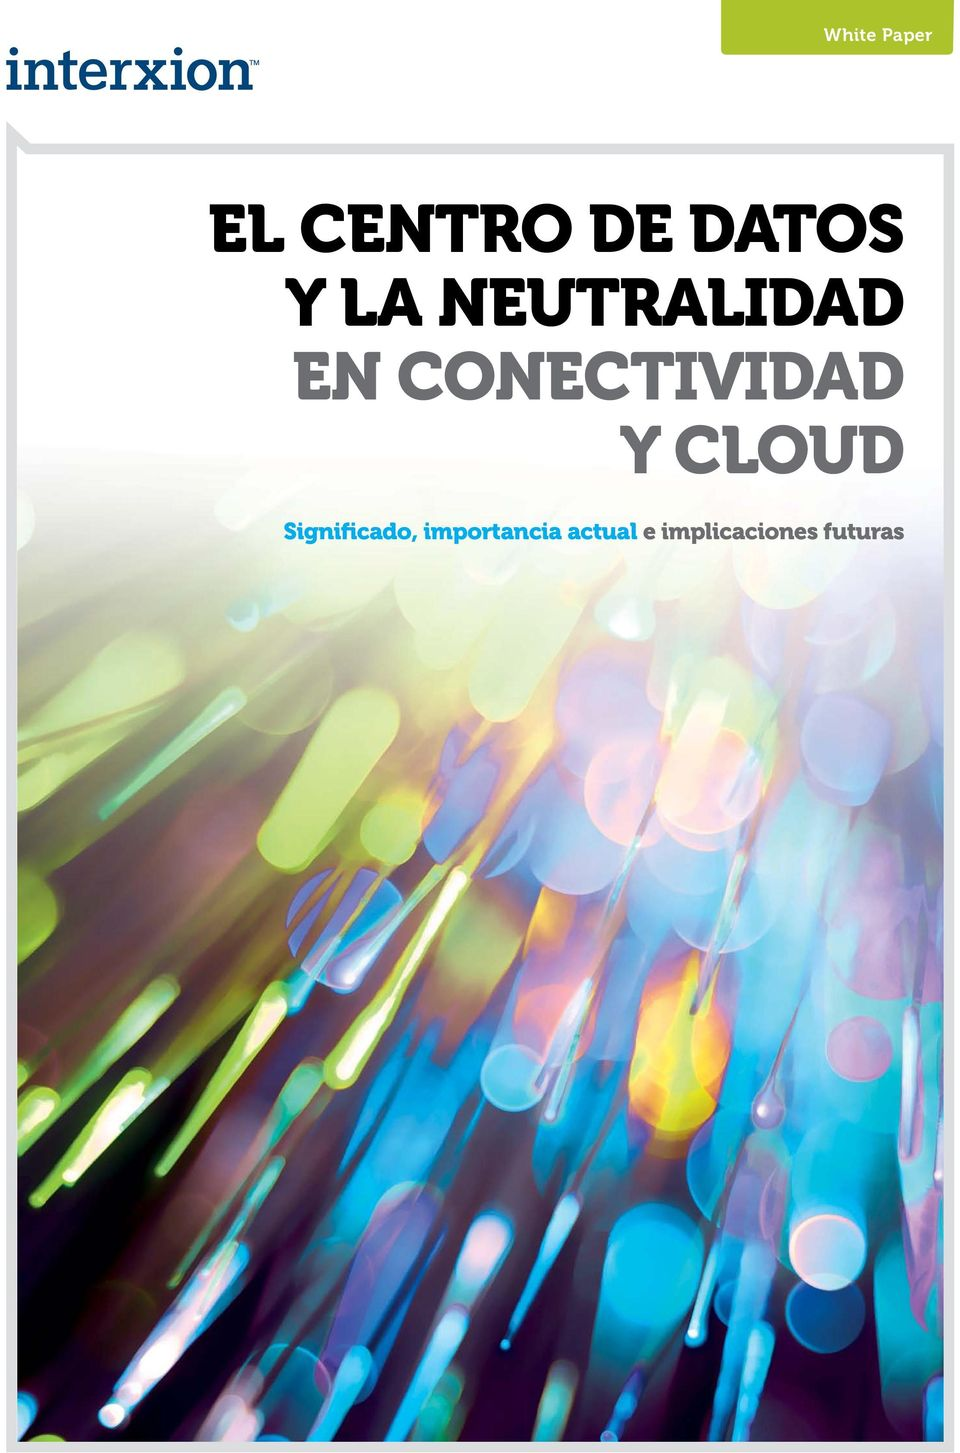 Y CLOUD Significado,